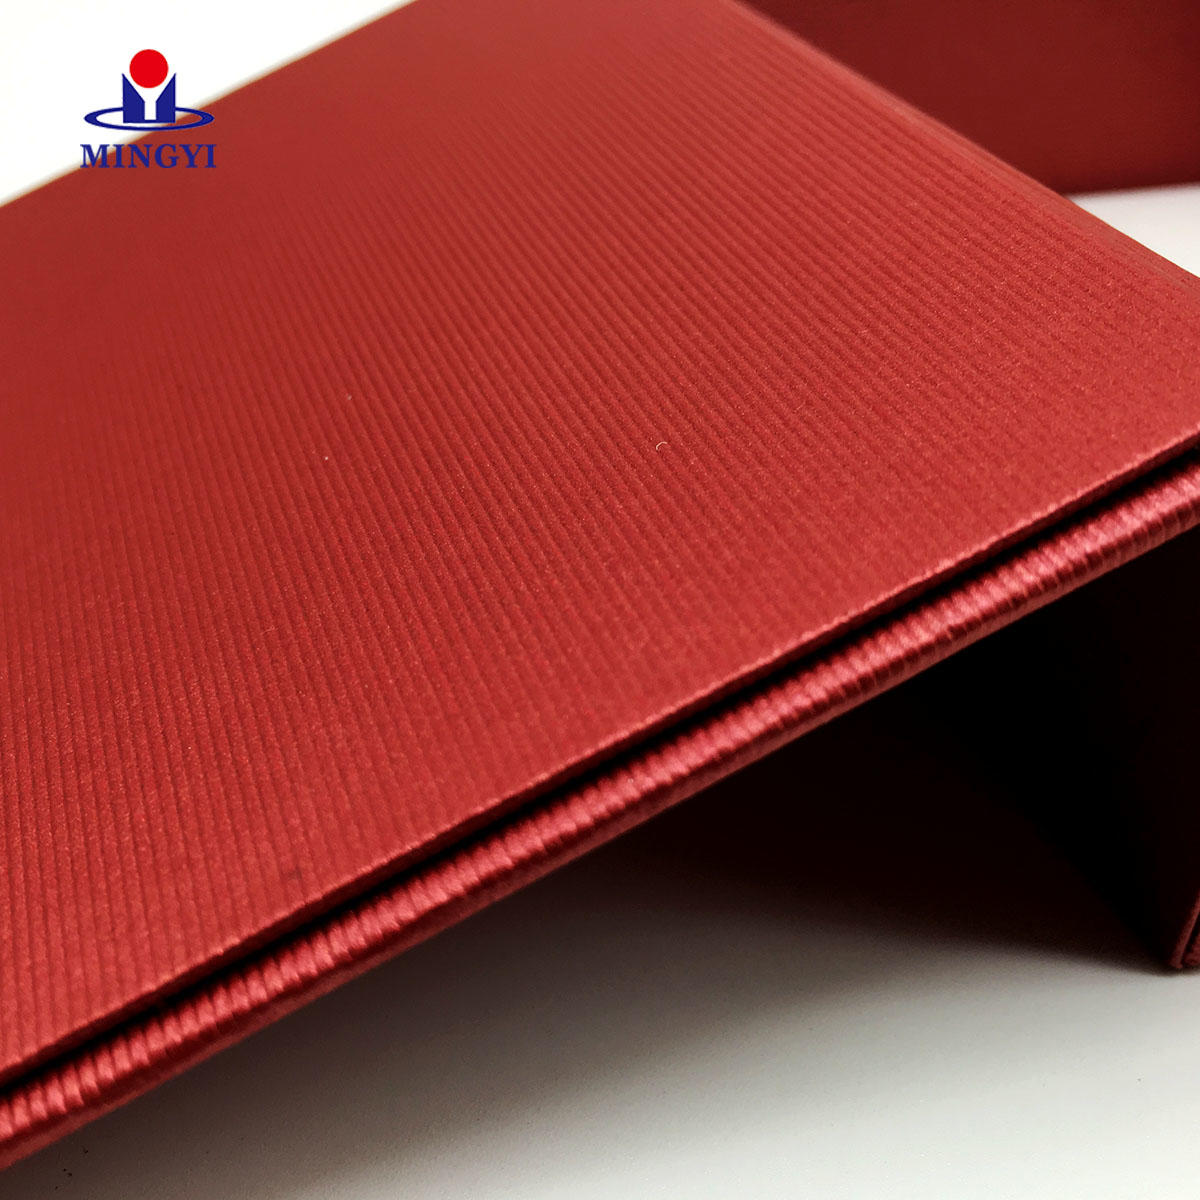 Mingyi Printing New magnetic gift box company for present-3